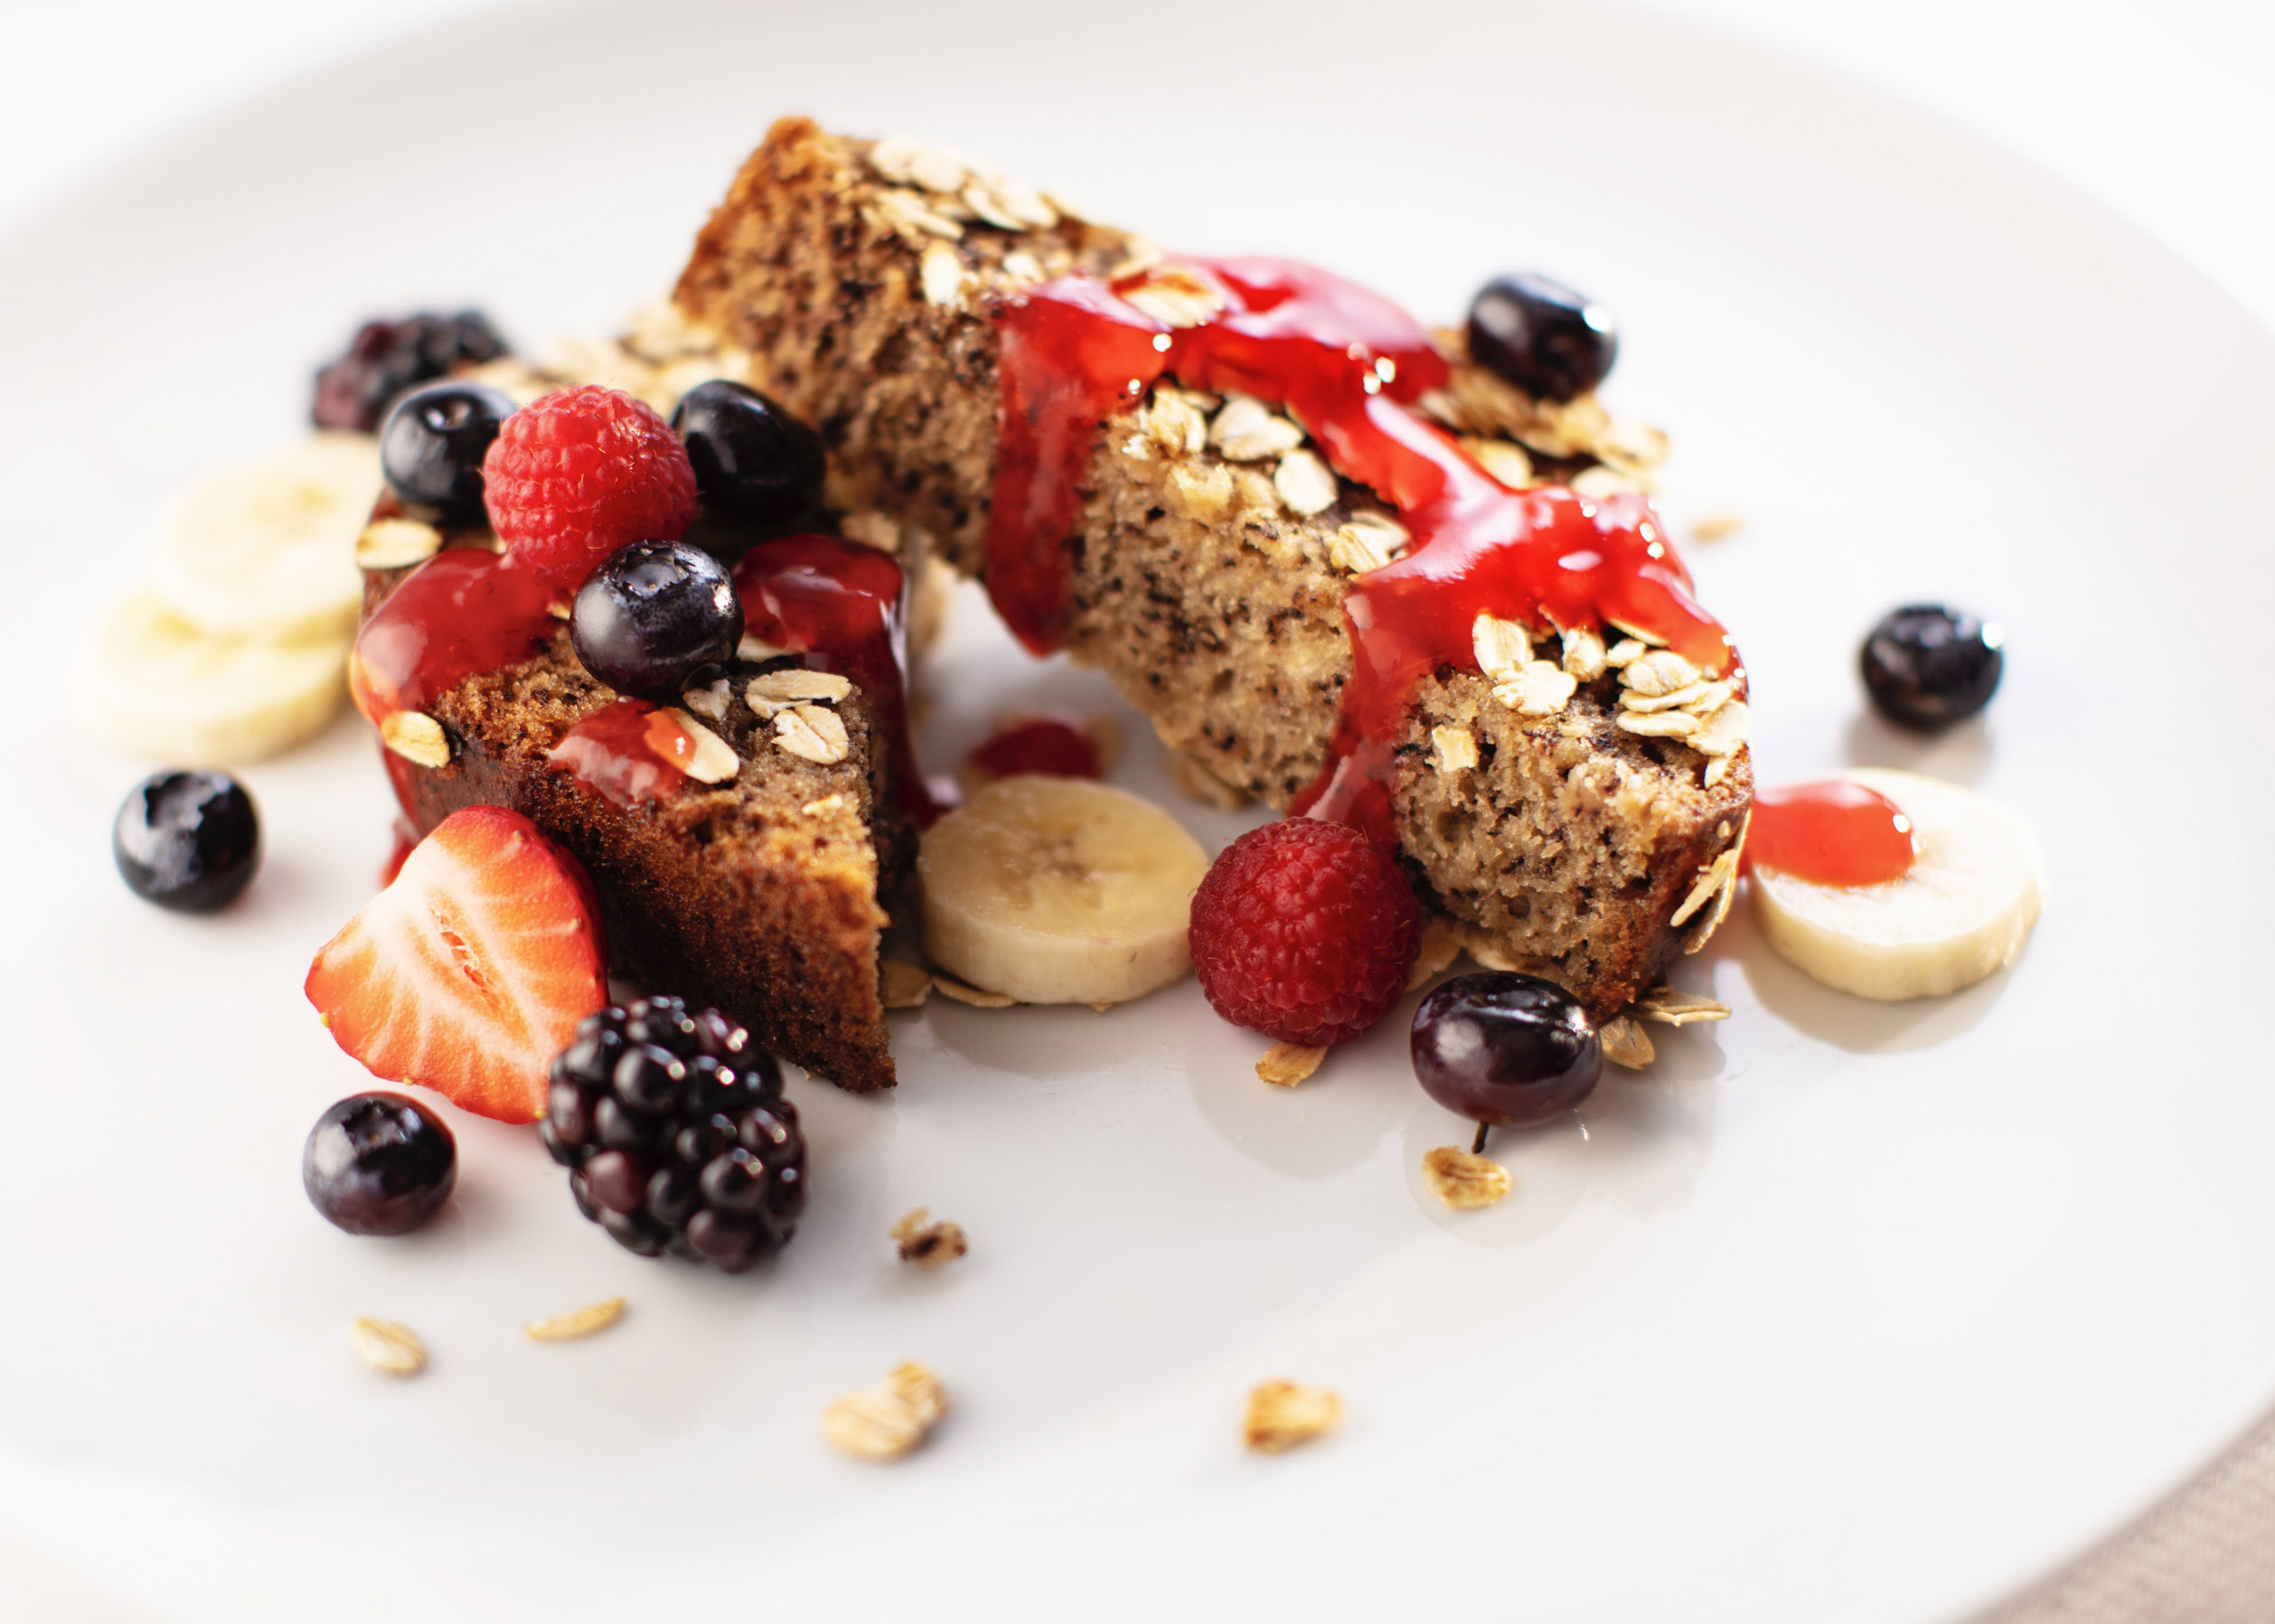 Banana bread French toast with berries